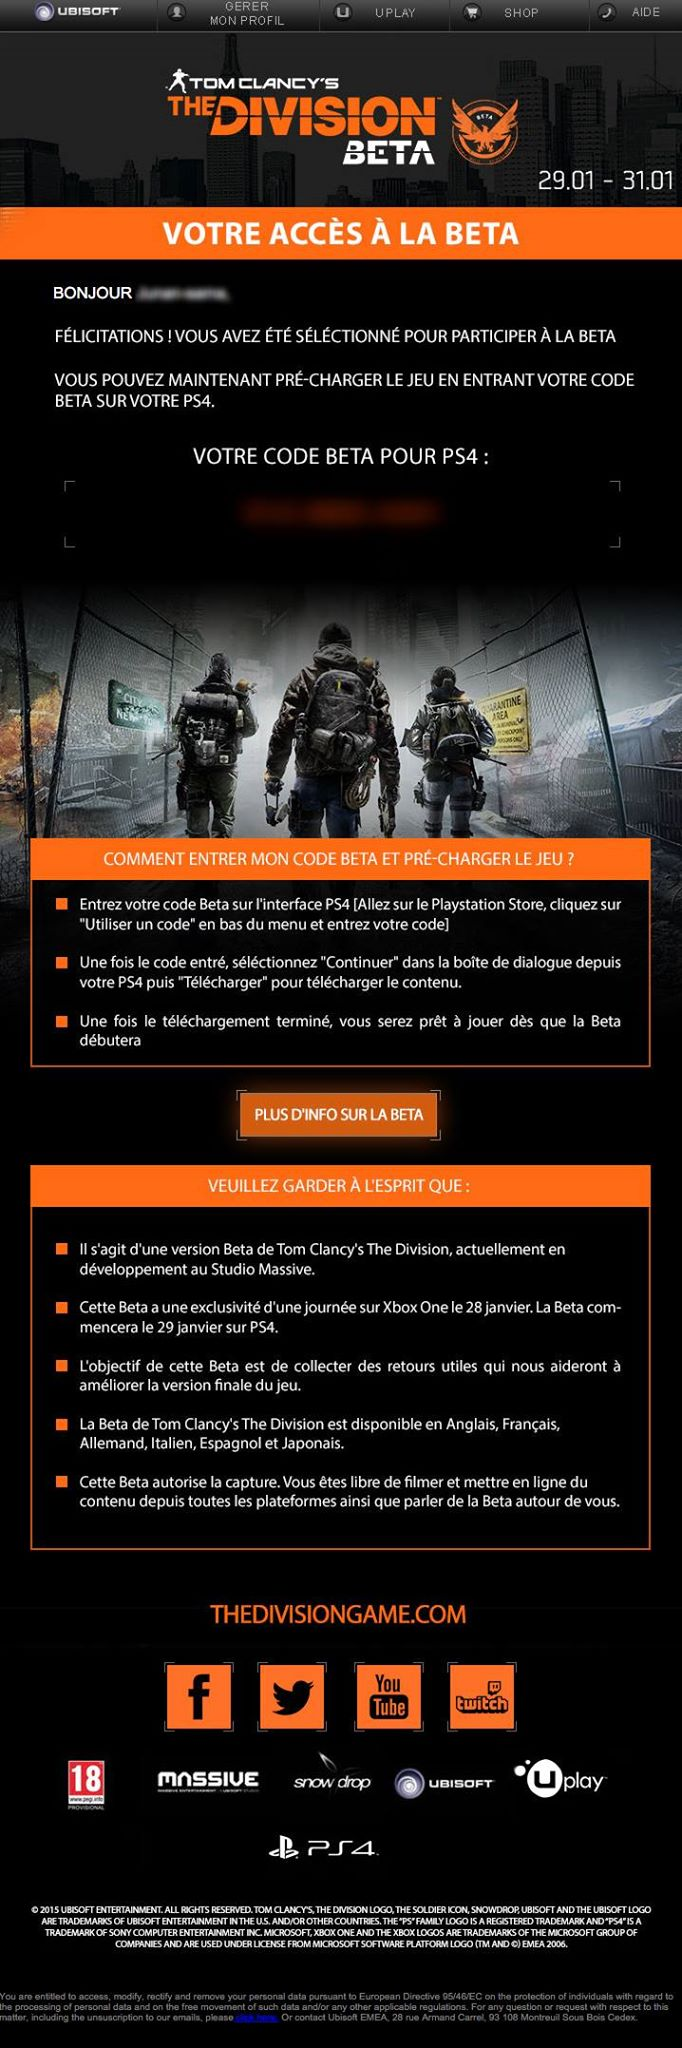 the division ps4 beta access